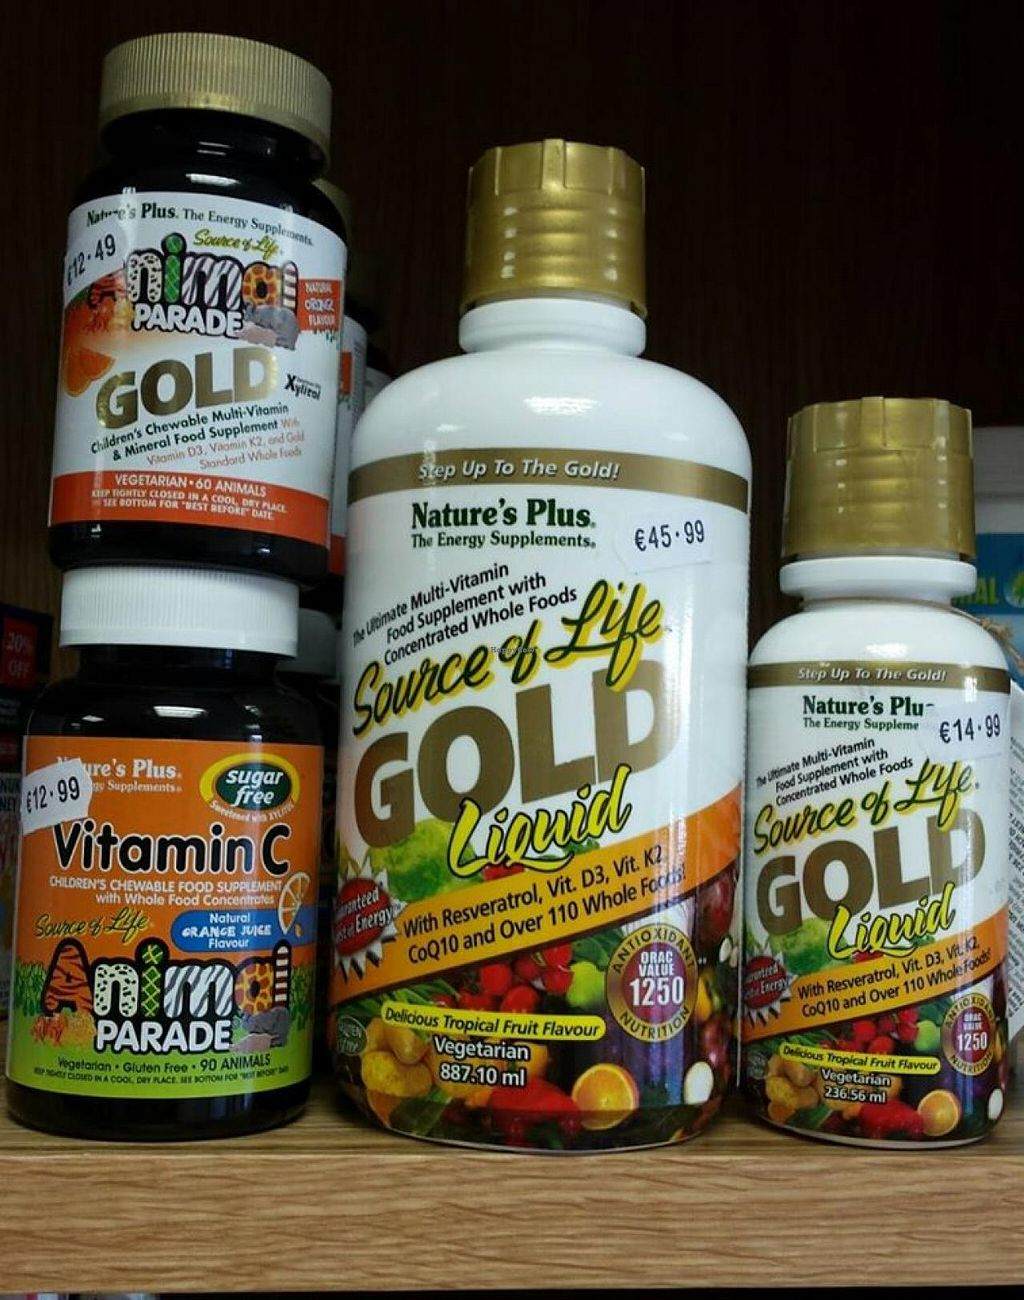 """Photo of Wholesome  by <a href=""""/members/profile/Venusr84"""">Venusr84</a> <br/>liquid supplements  <br/> October 3, 2014  - <a href='/contact/abuse/image/51426/82001'>Report</a>"""